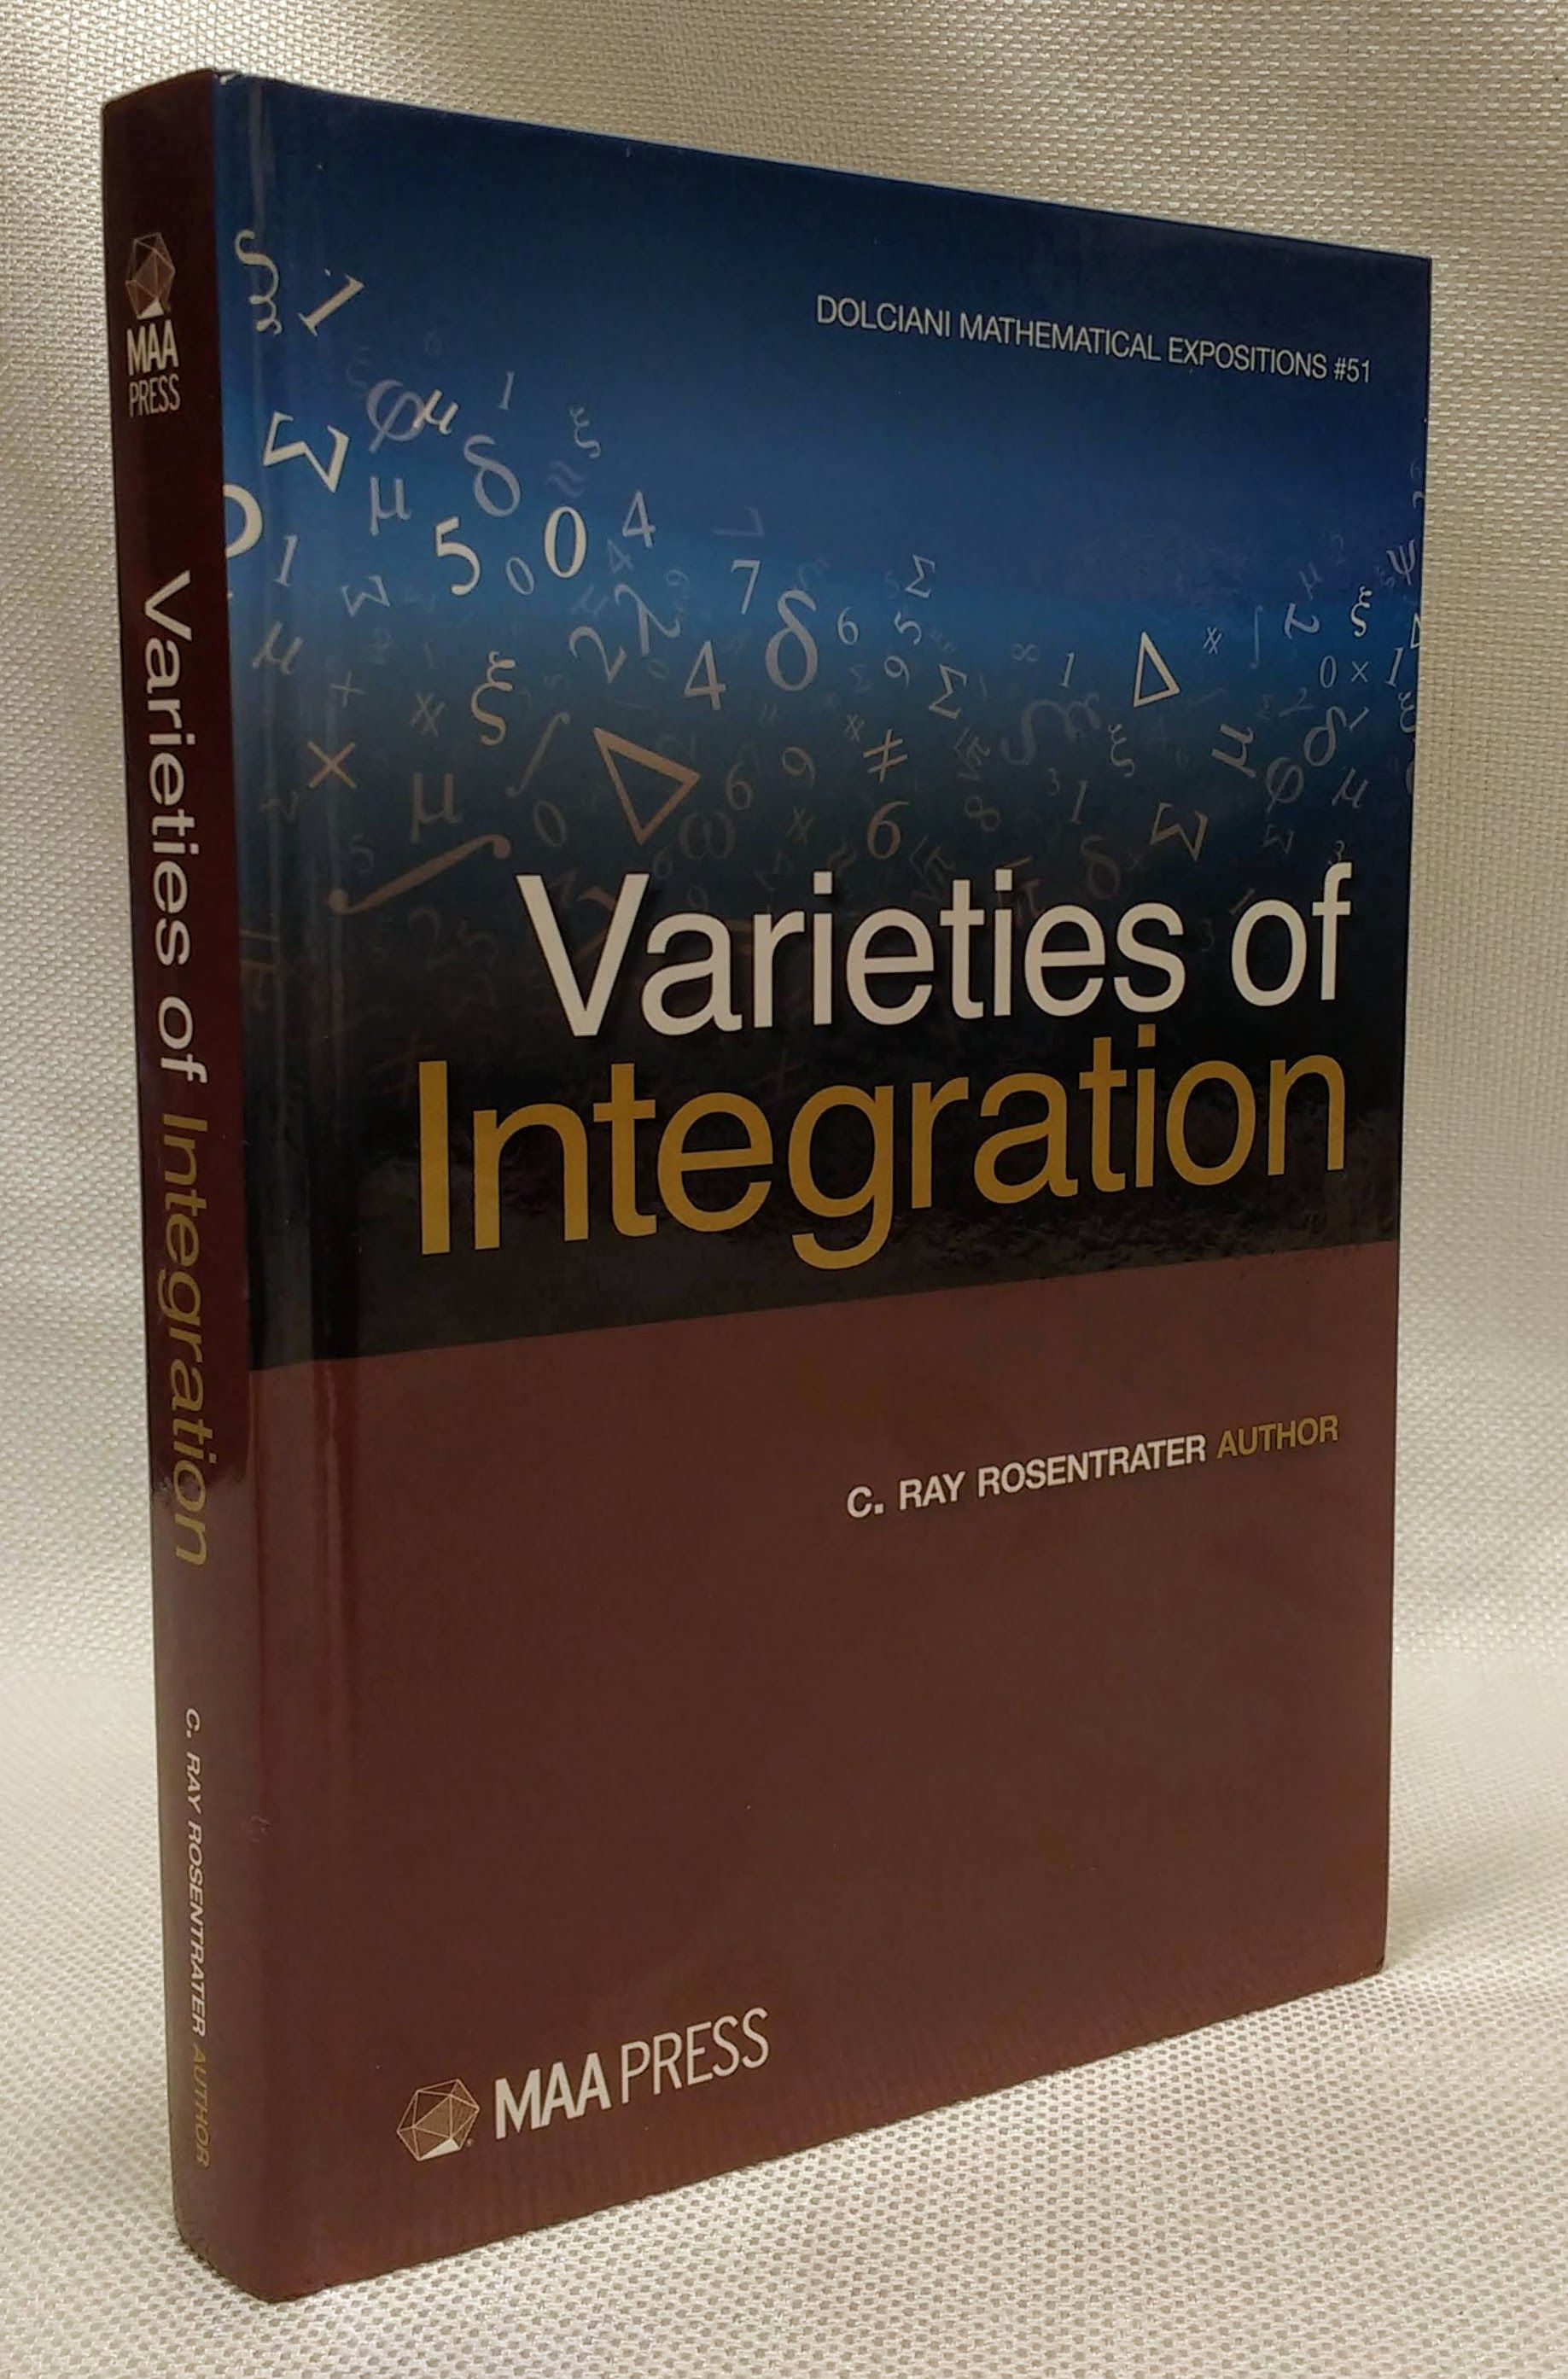 Varieties of Integration (Dolciani Mathematical Expositions), C. Ray Rosentrater